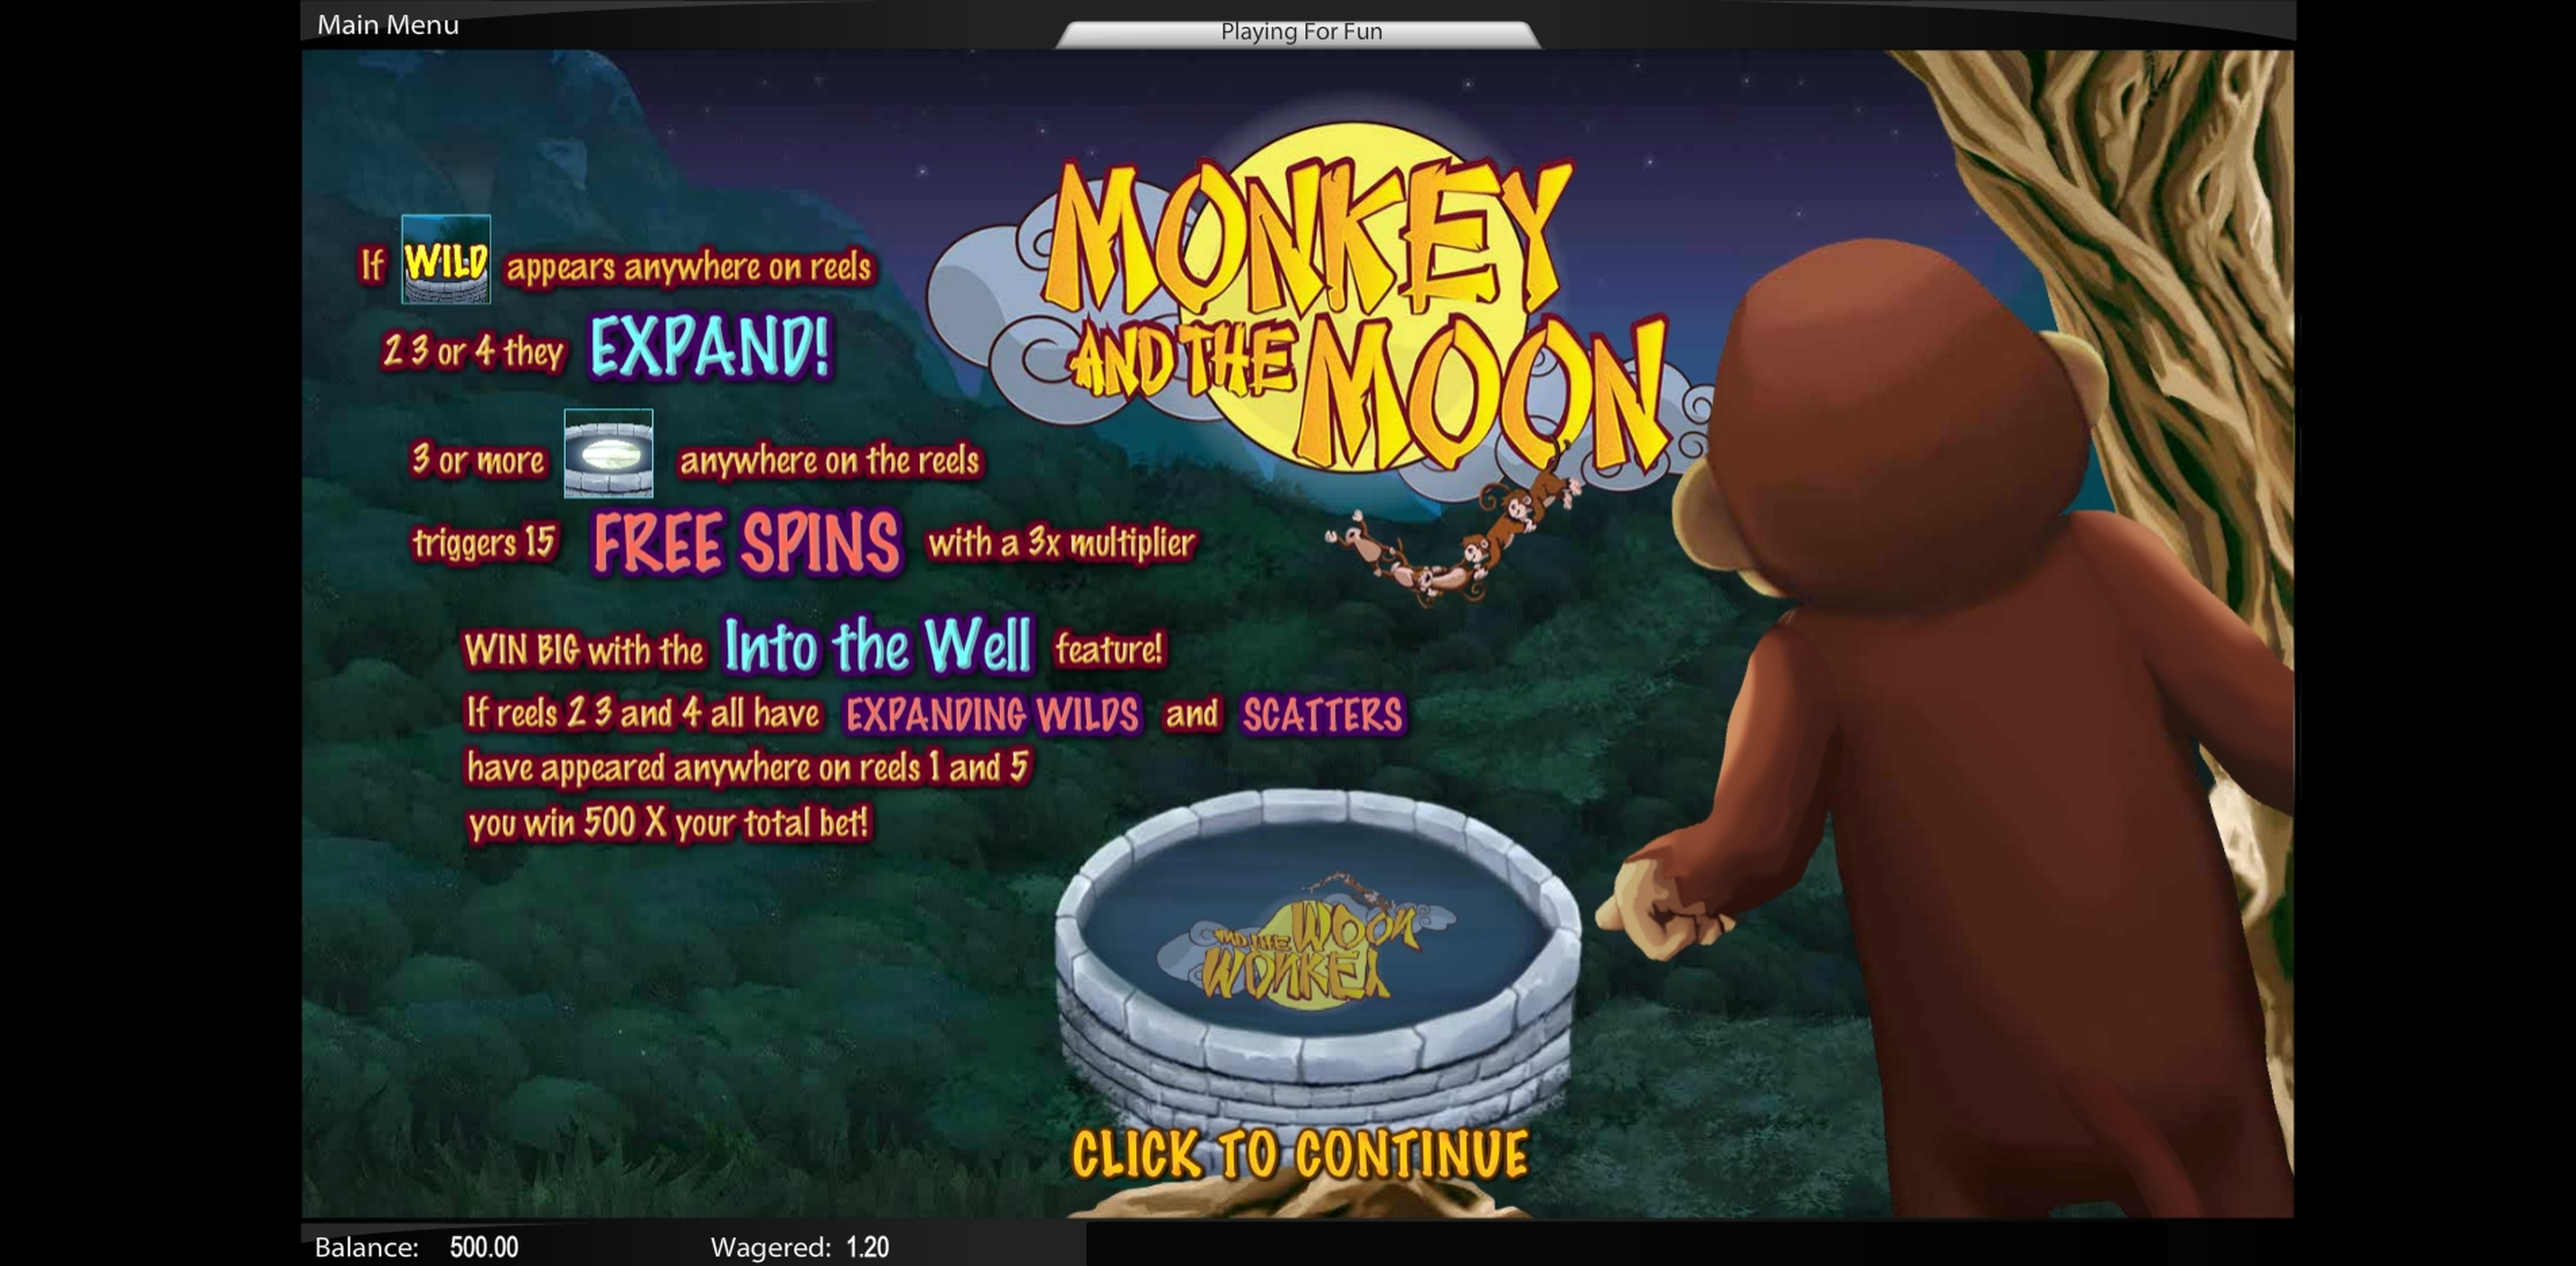 Play Monkey and the Moon Free Casino Slot Game by TOP TREND GAMING